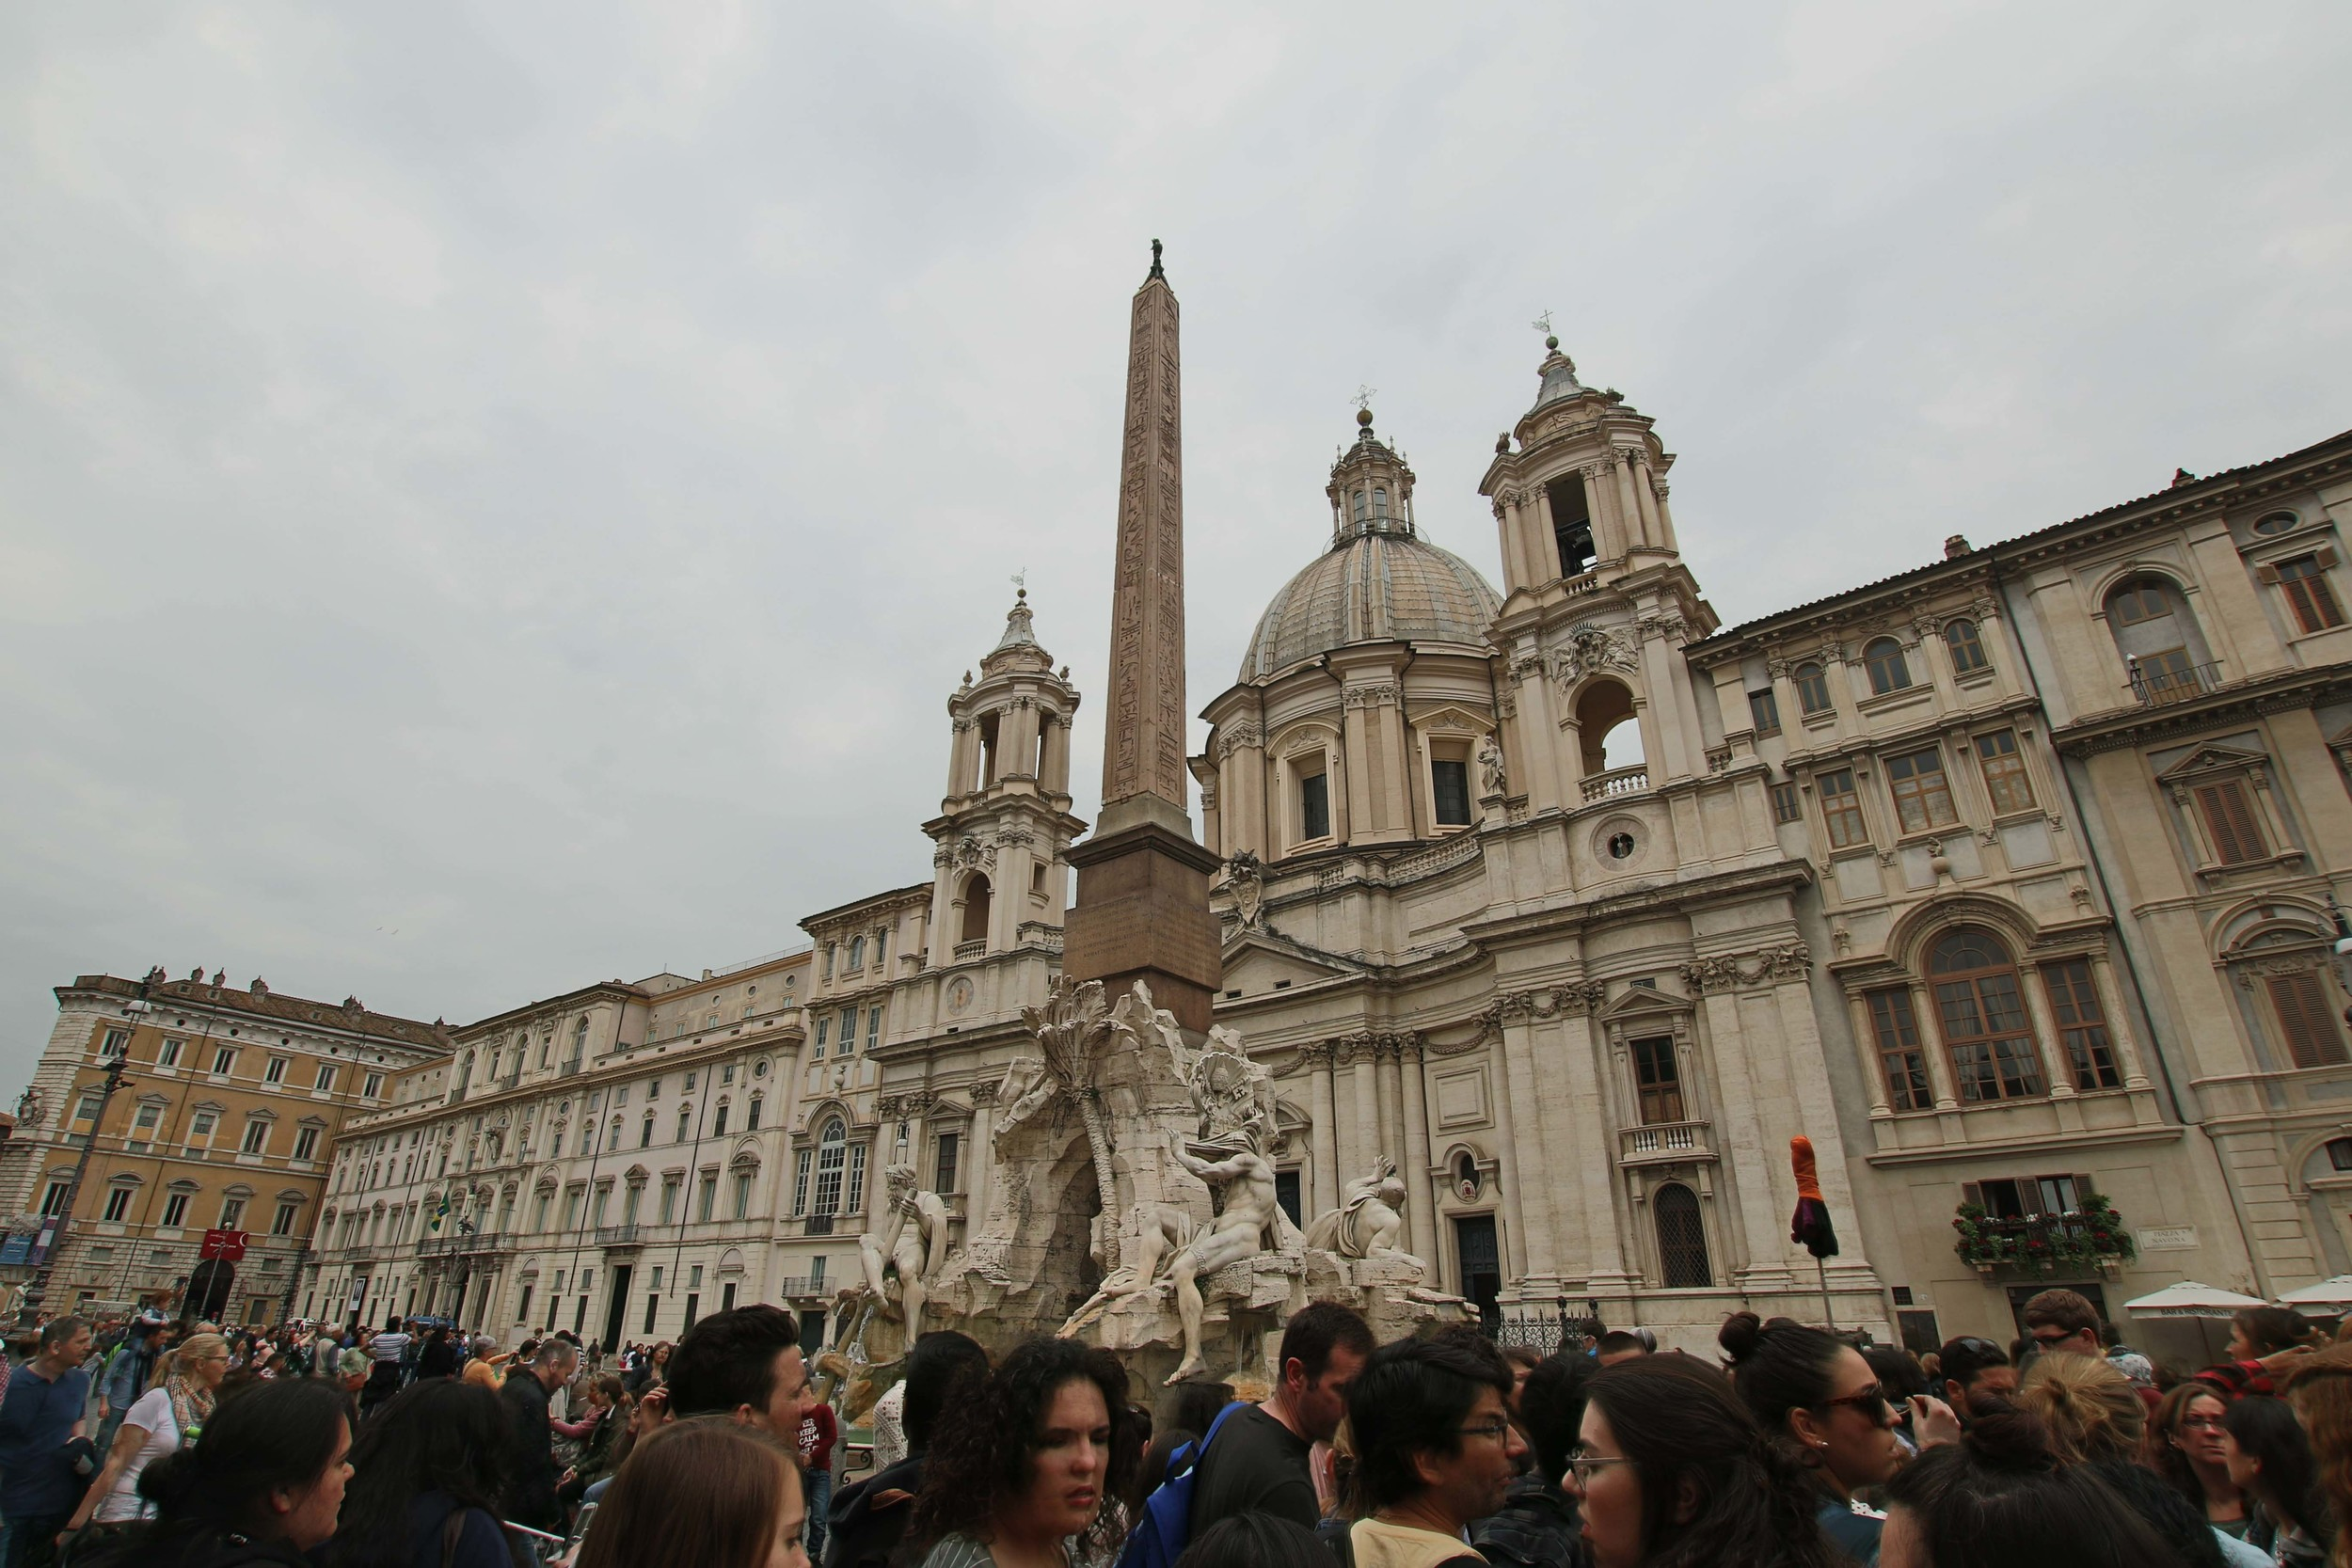 Central fountain at Piazza Navona